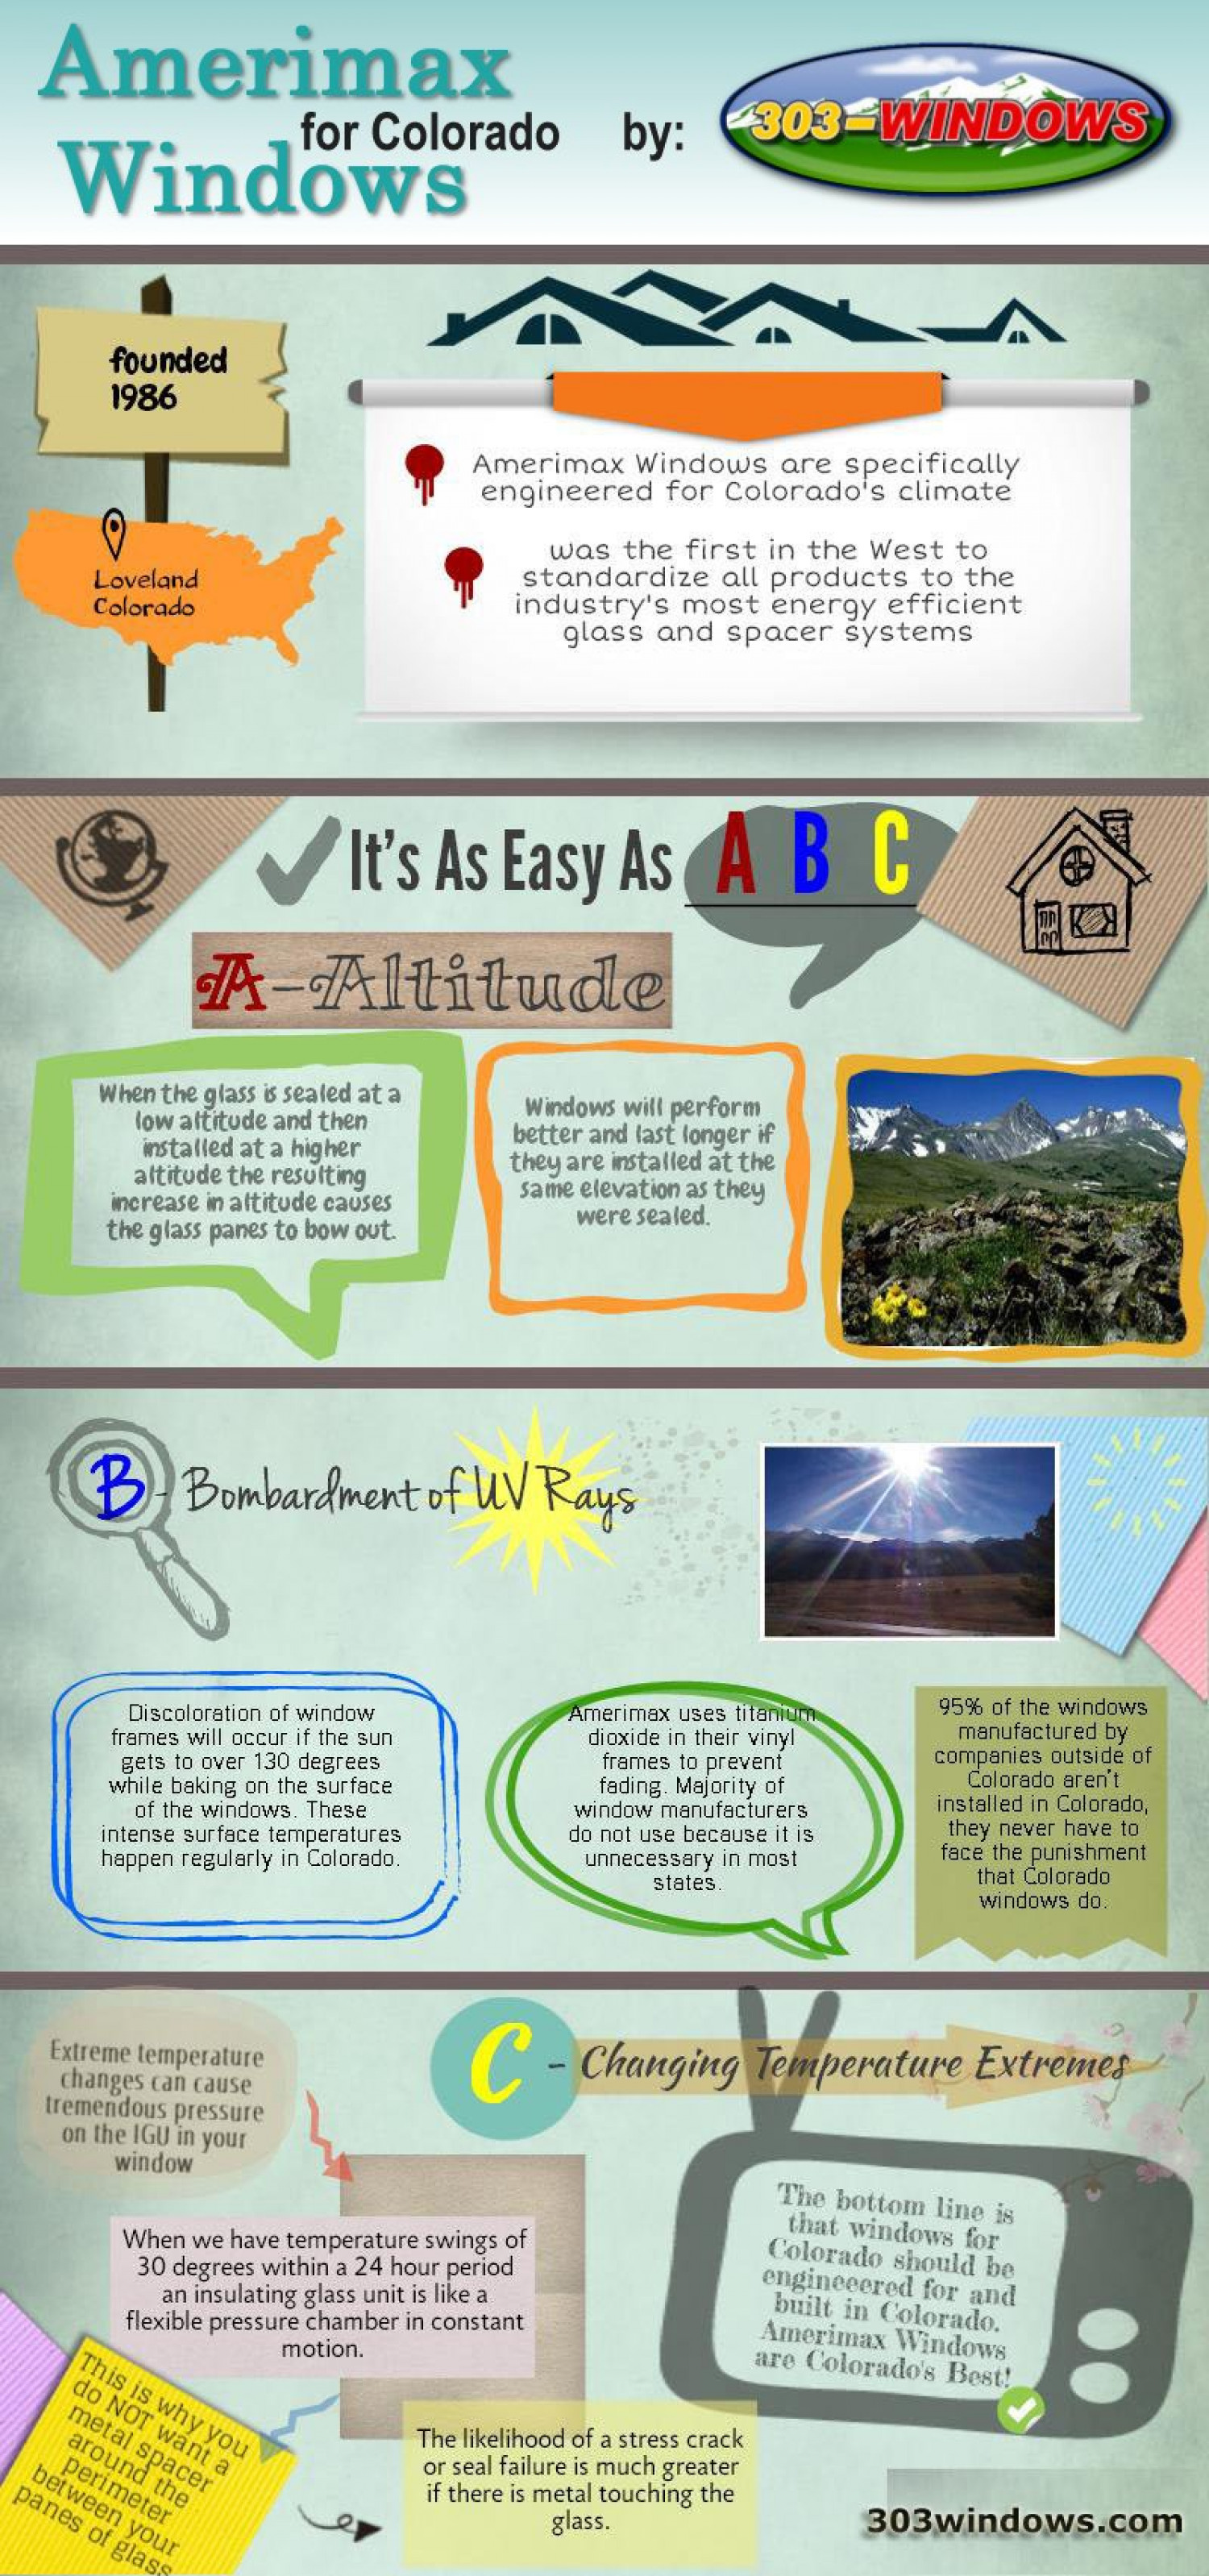 Amerimax Windows For Colorado Infographic